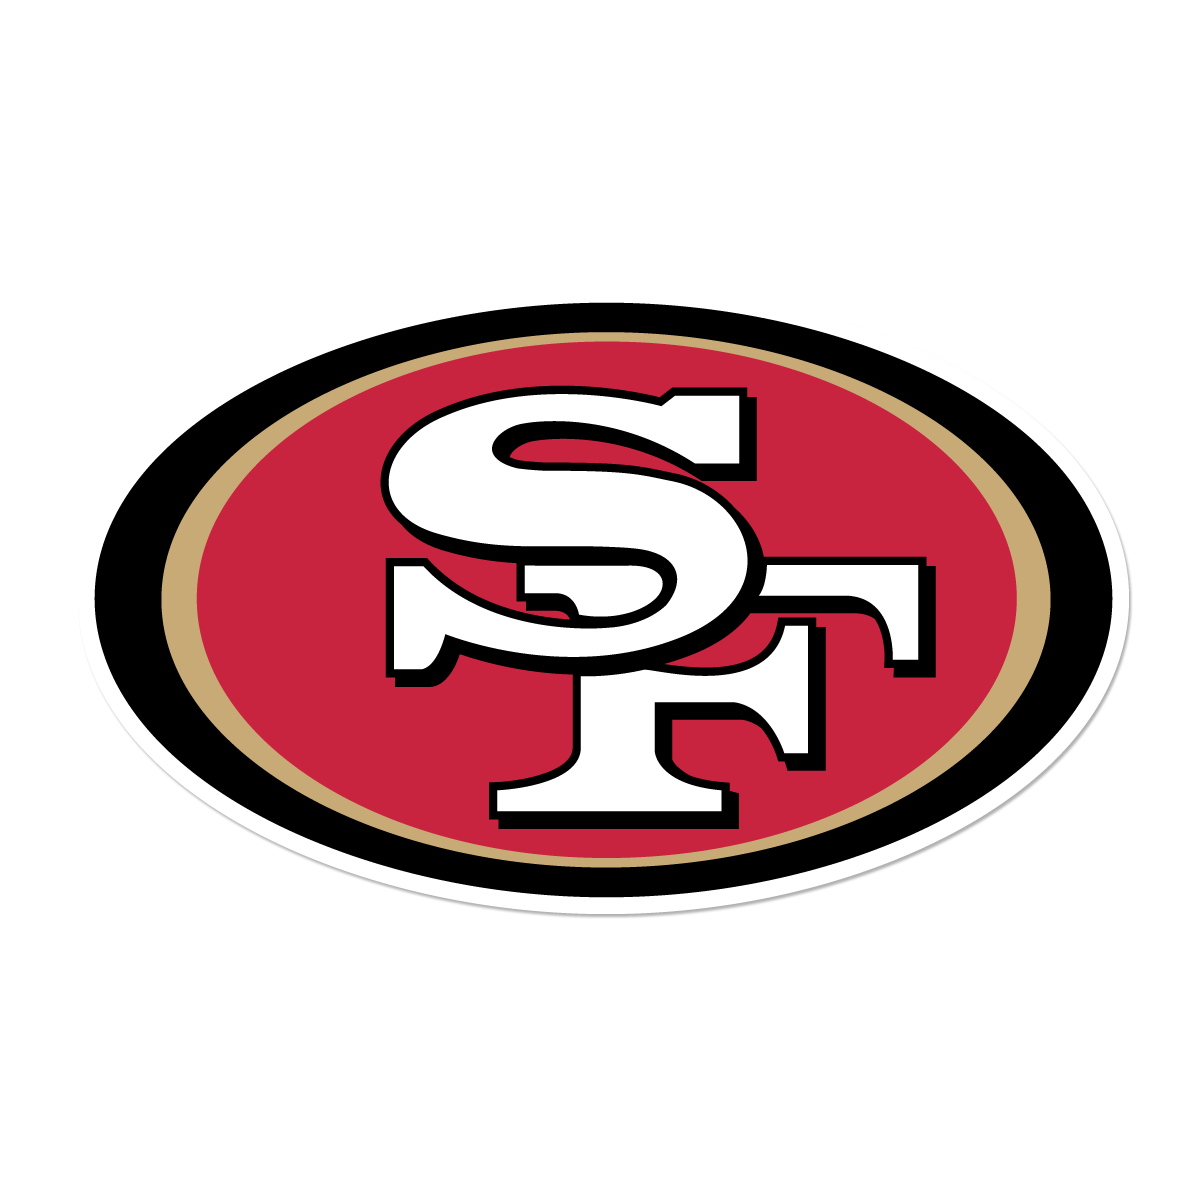 What's happening to the San Francisco 49ers?